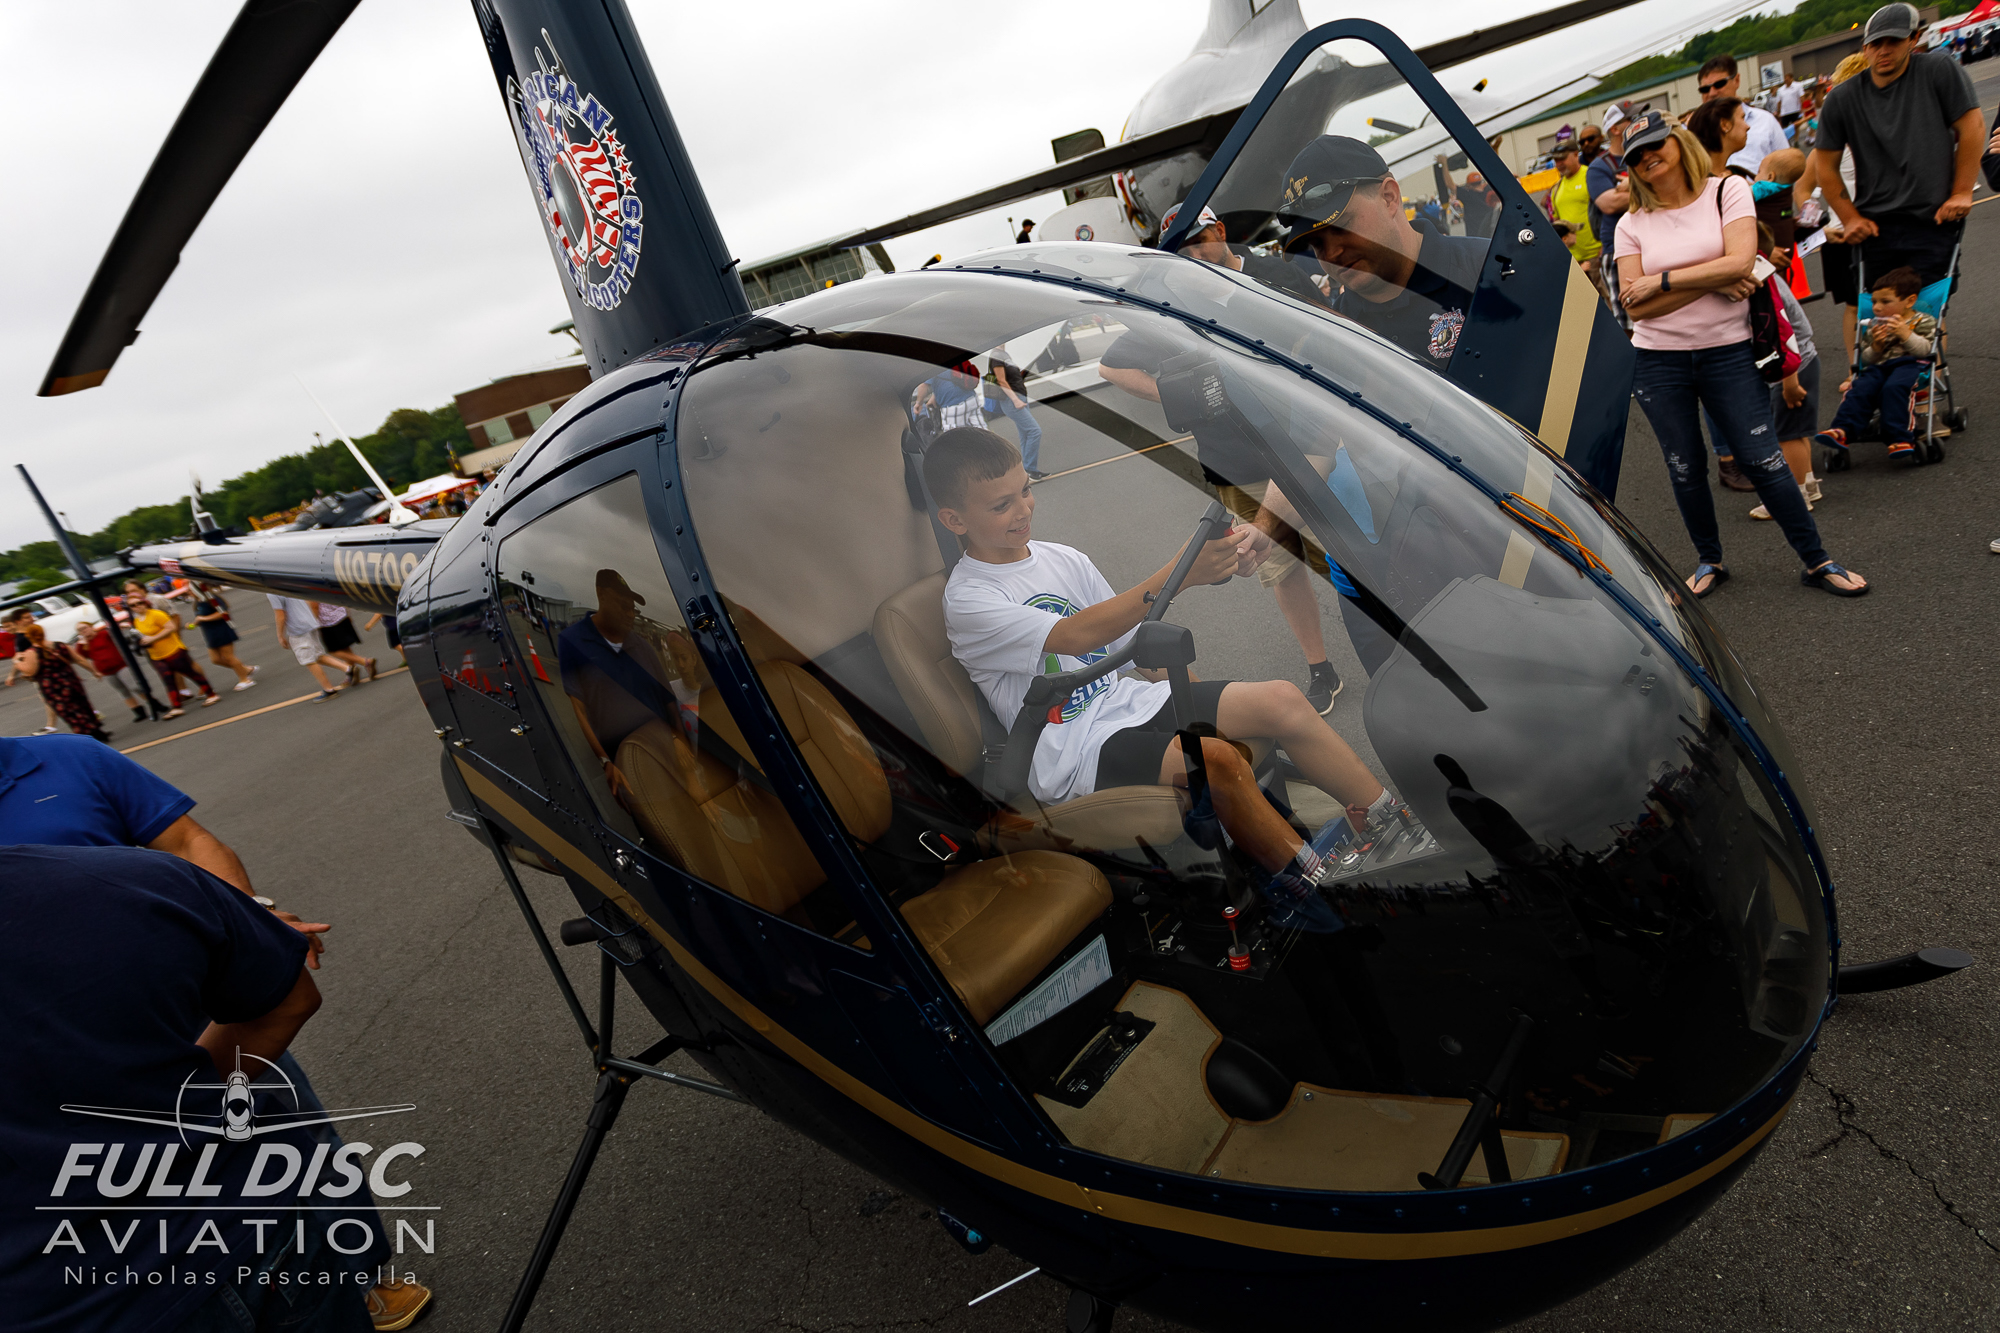 child_helicopter__aviation__nickpascarella_nicholaspascarella_fulldiscaviation_leasewebmanassasairshow.jpg